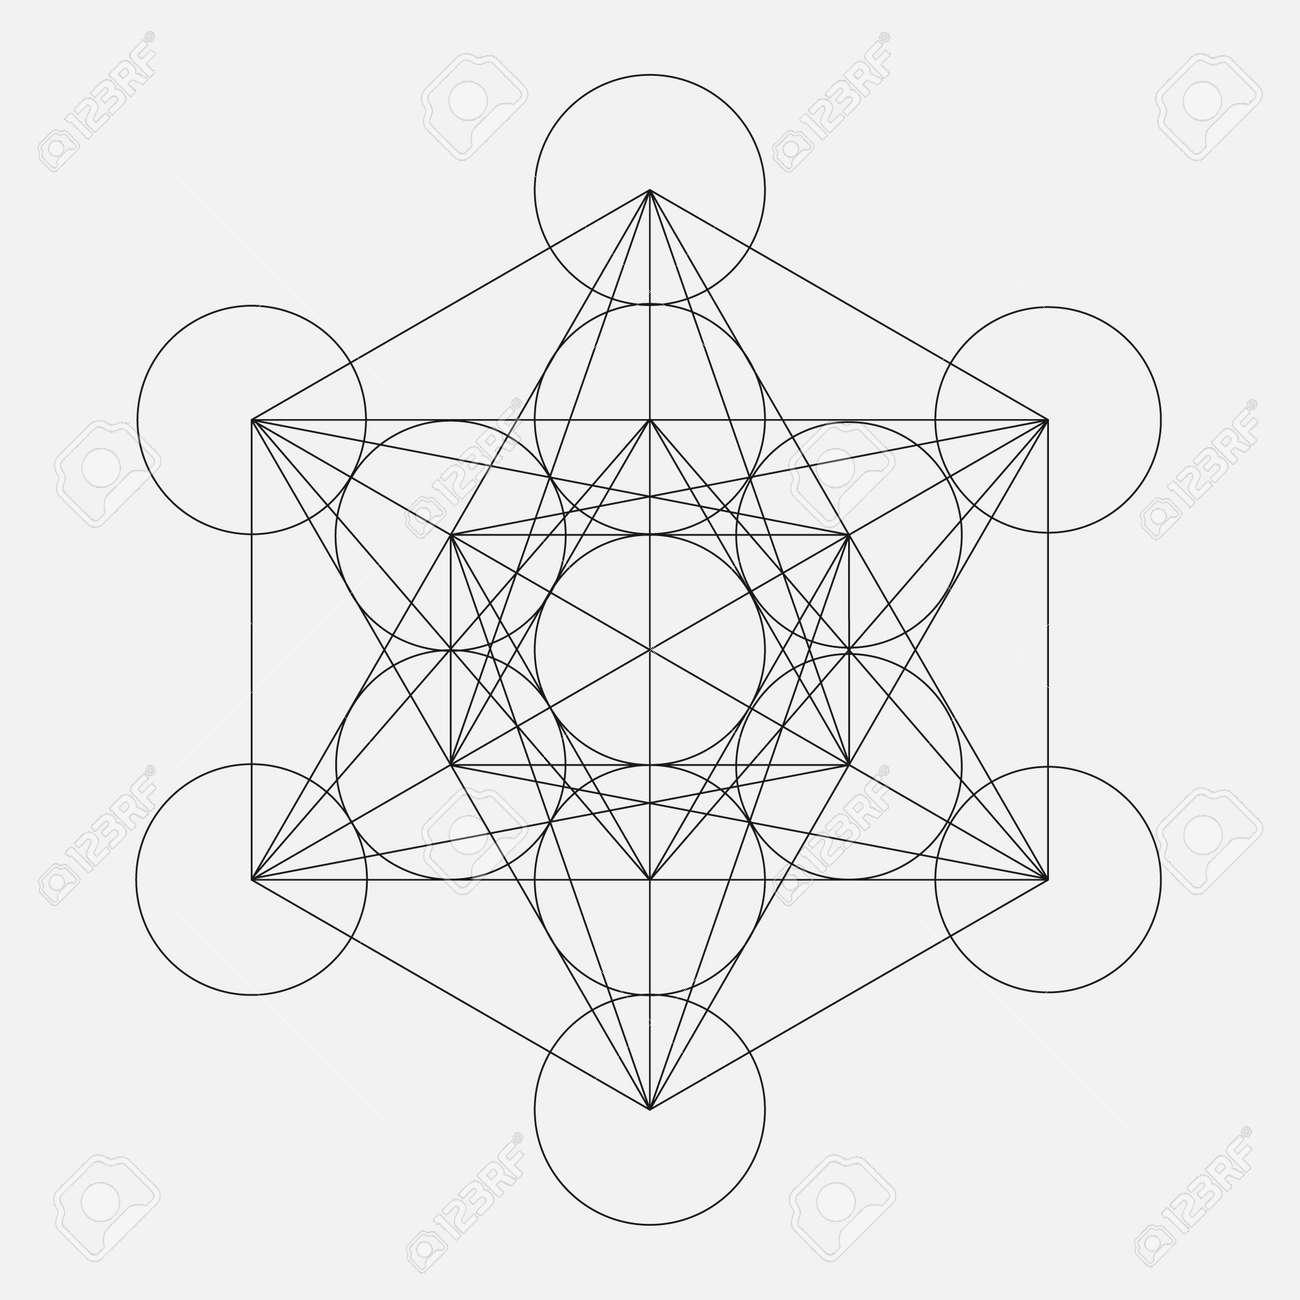 Metatron's Cube. Flower of life. Vector Geometric Symbol isolated. Sacred Geometric Figure named Metatrons Cube. Holy Glyph. - 52984449